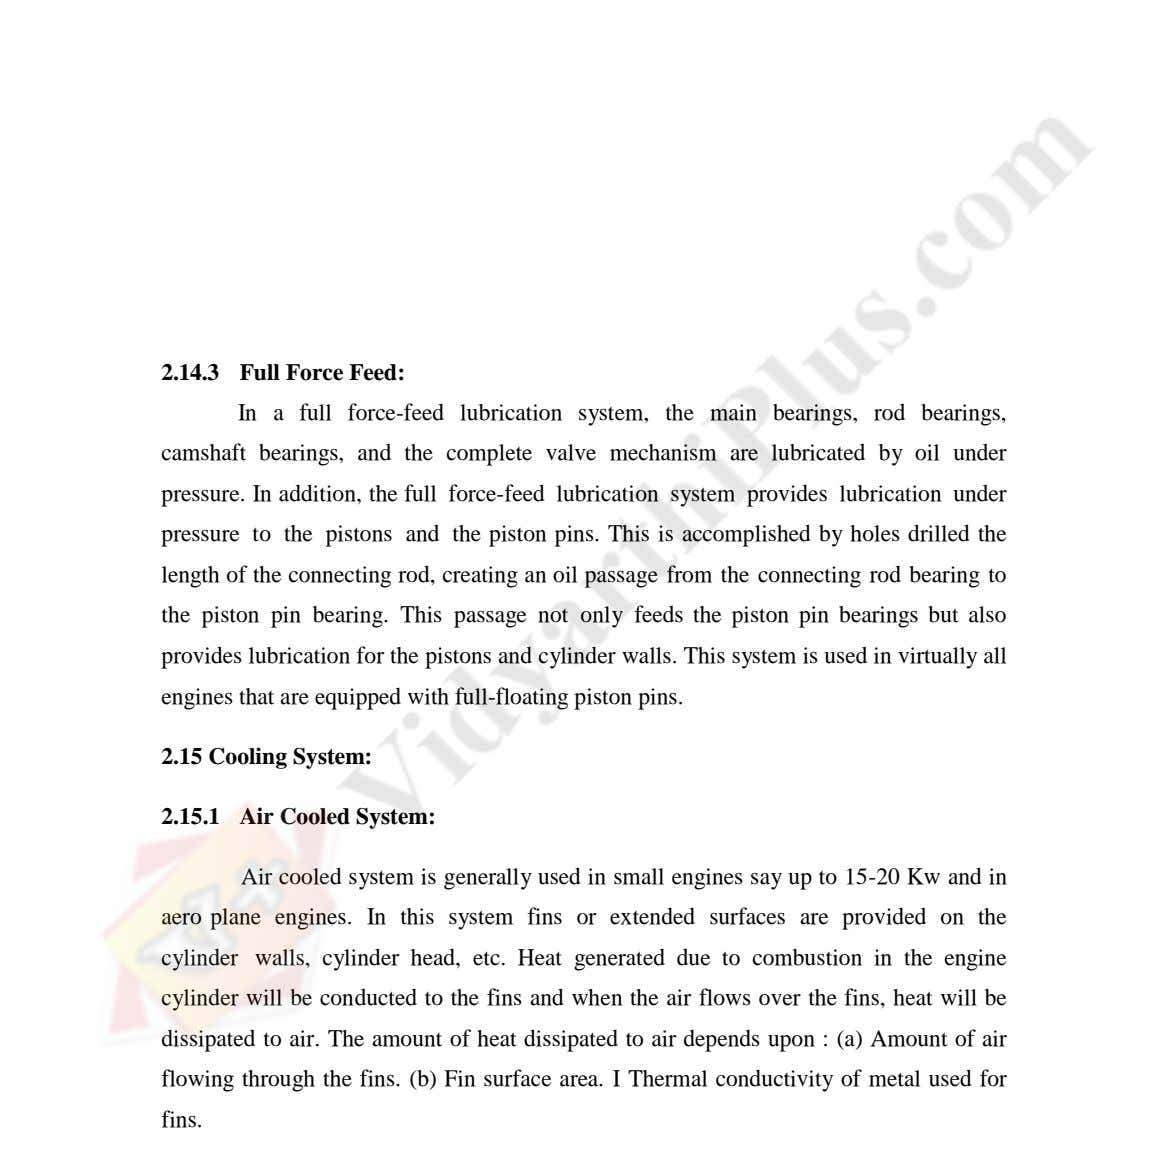 2.14.3 Full Force Feed: In a full force-feed lubrication system, the main bearings, rod bearings,